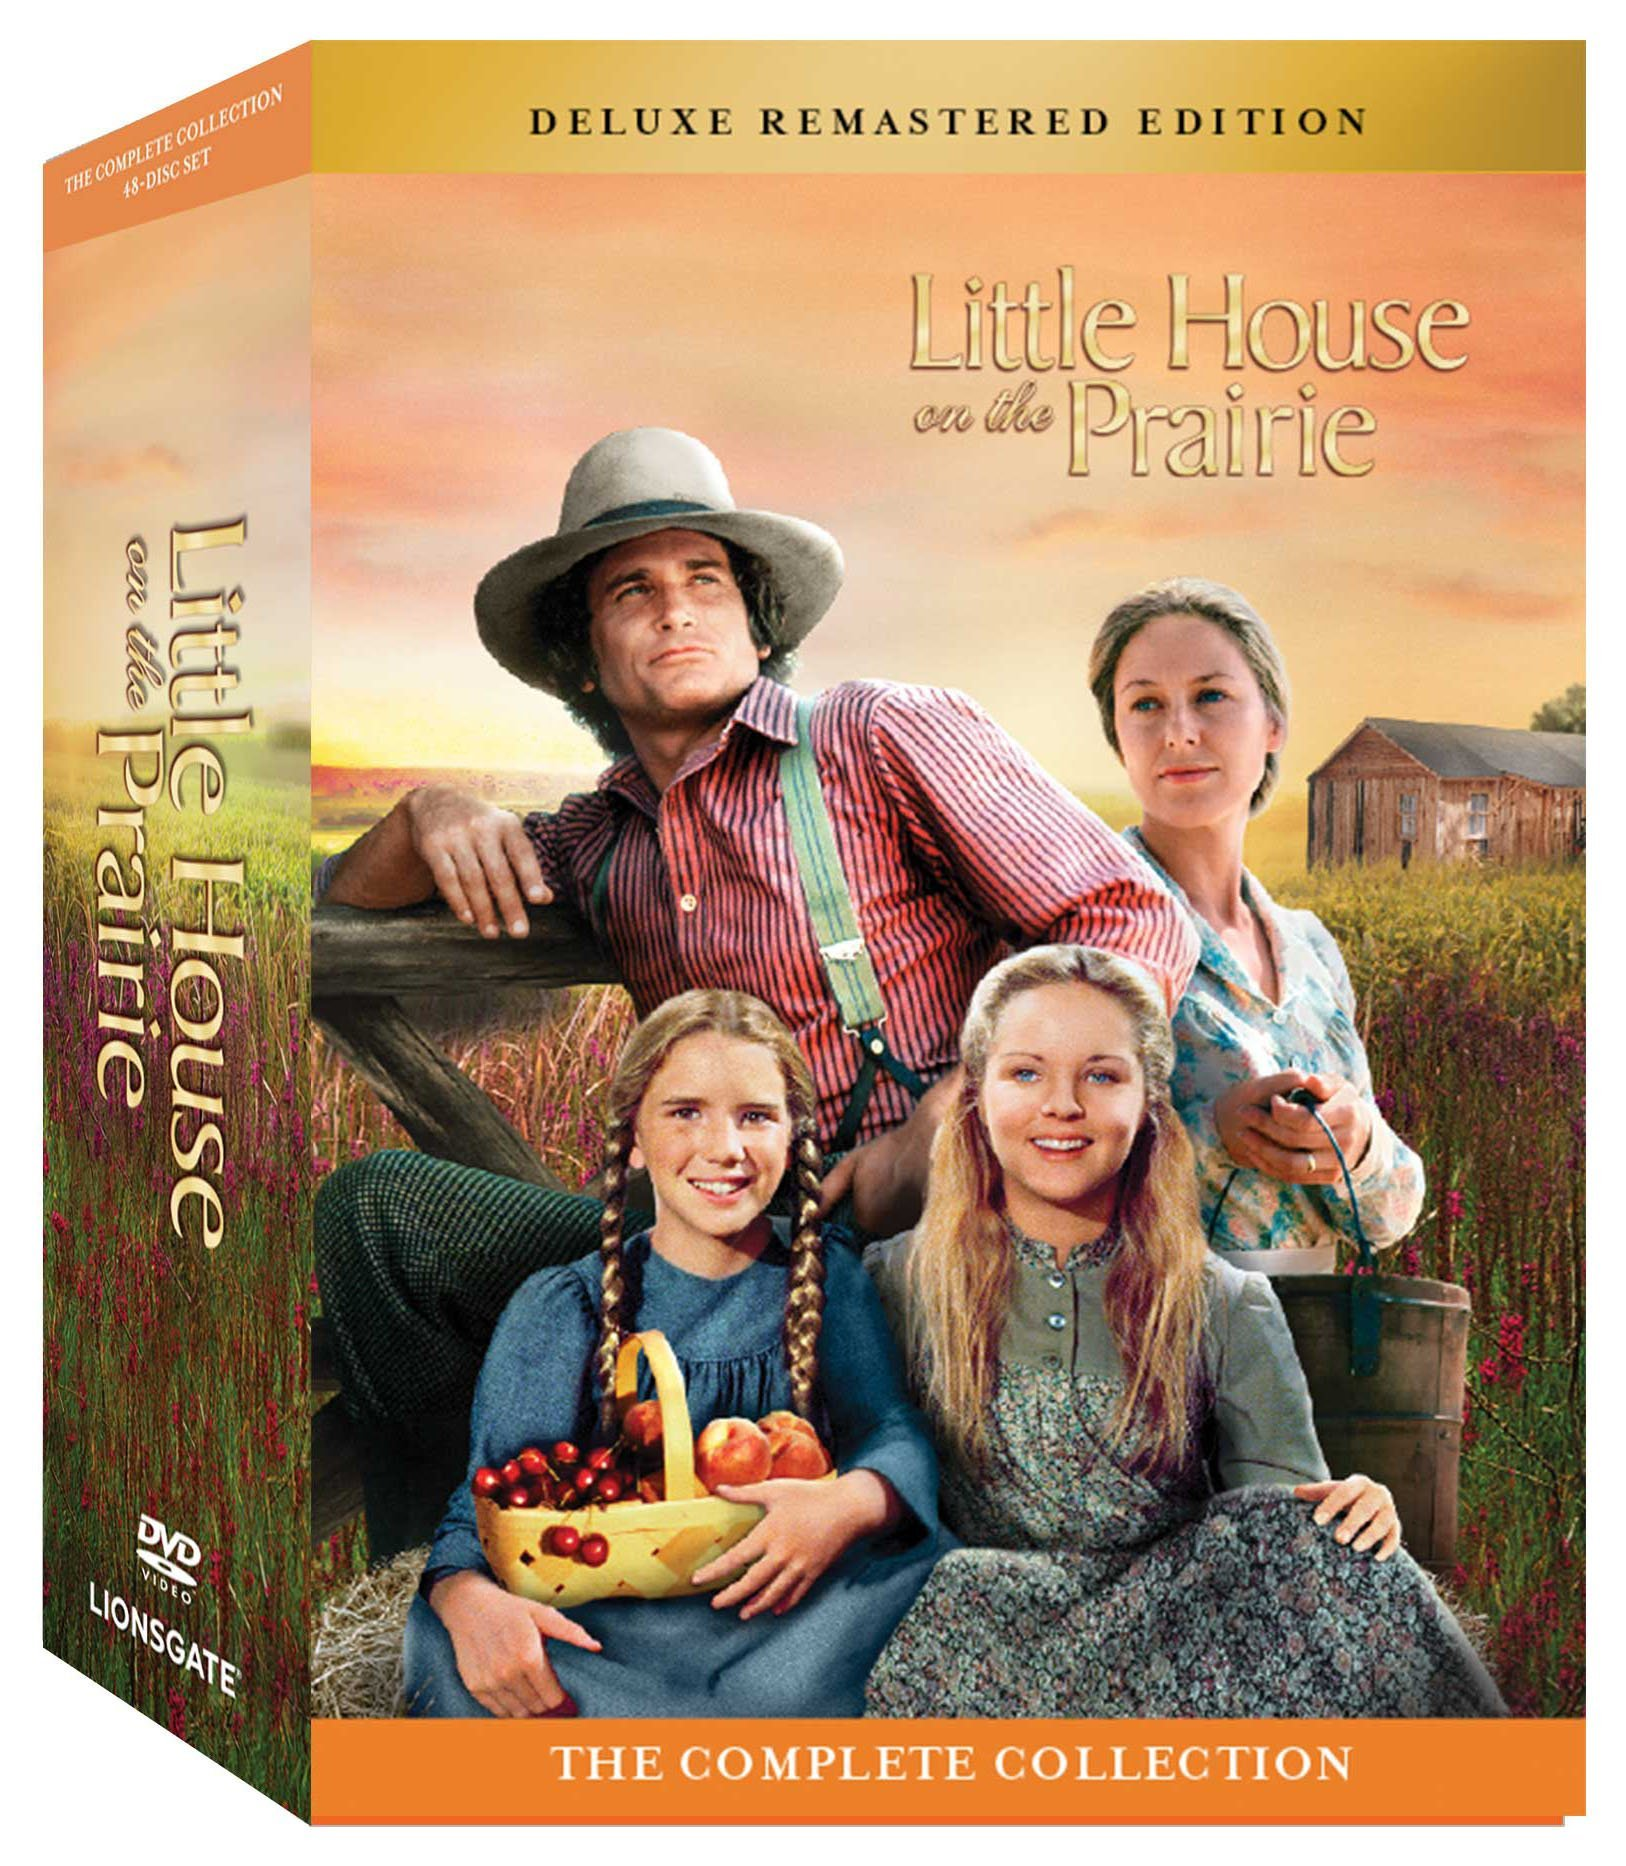 DVD : Little House on the Prairie: Complete Collection (Boxed Set, Full Frame, Deluxe Edition, Remastered, Dolby)